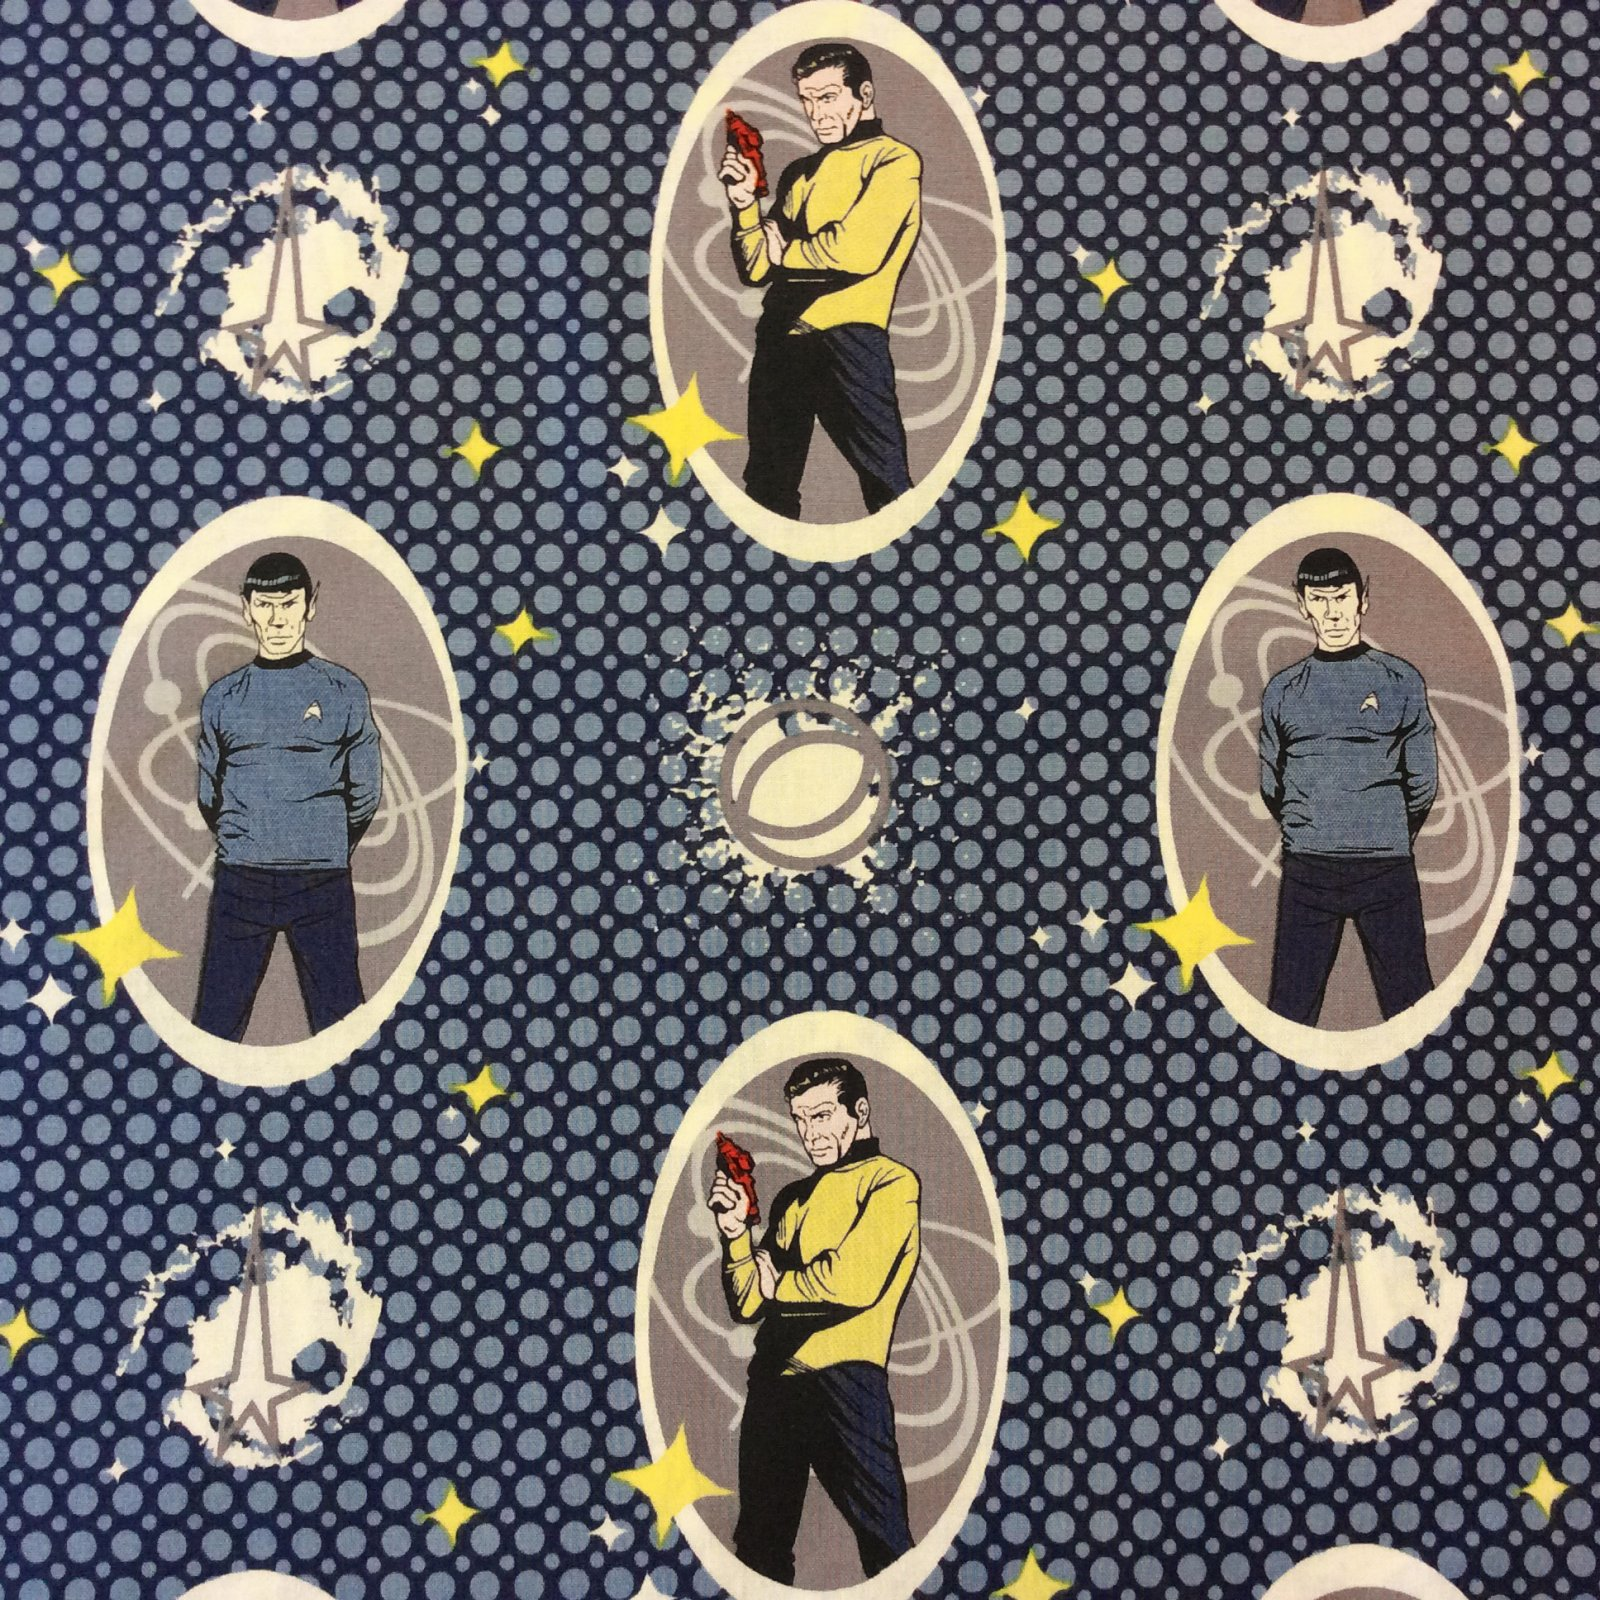 Star Trek Space USS Enterprise Krik Spock Sci-Fi Science Fiction Geek Nerd Television Show TV Stars Cotton Quilt Fabric CHE008